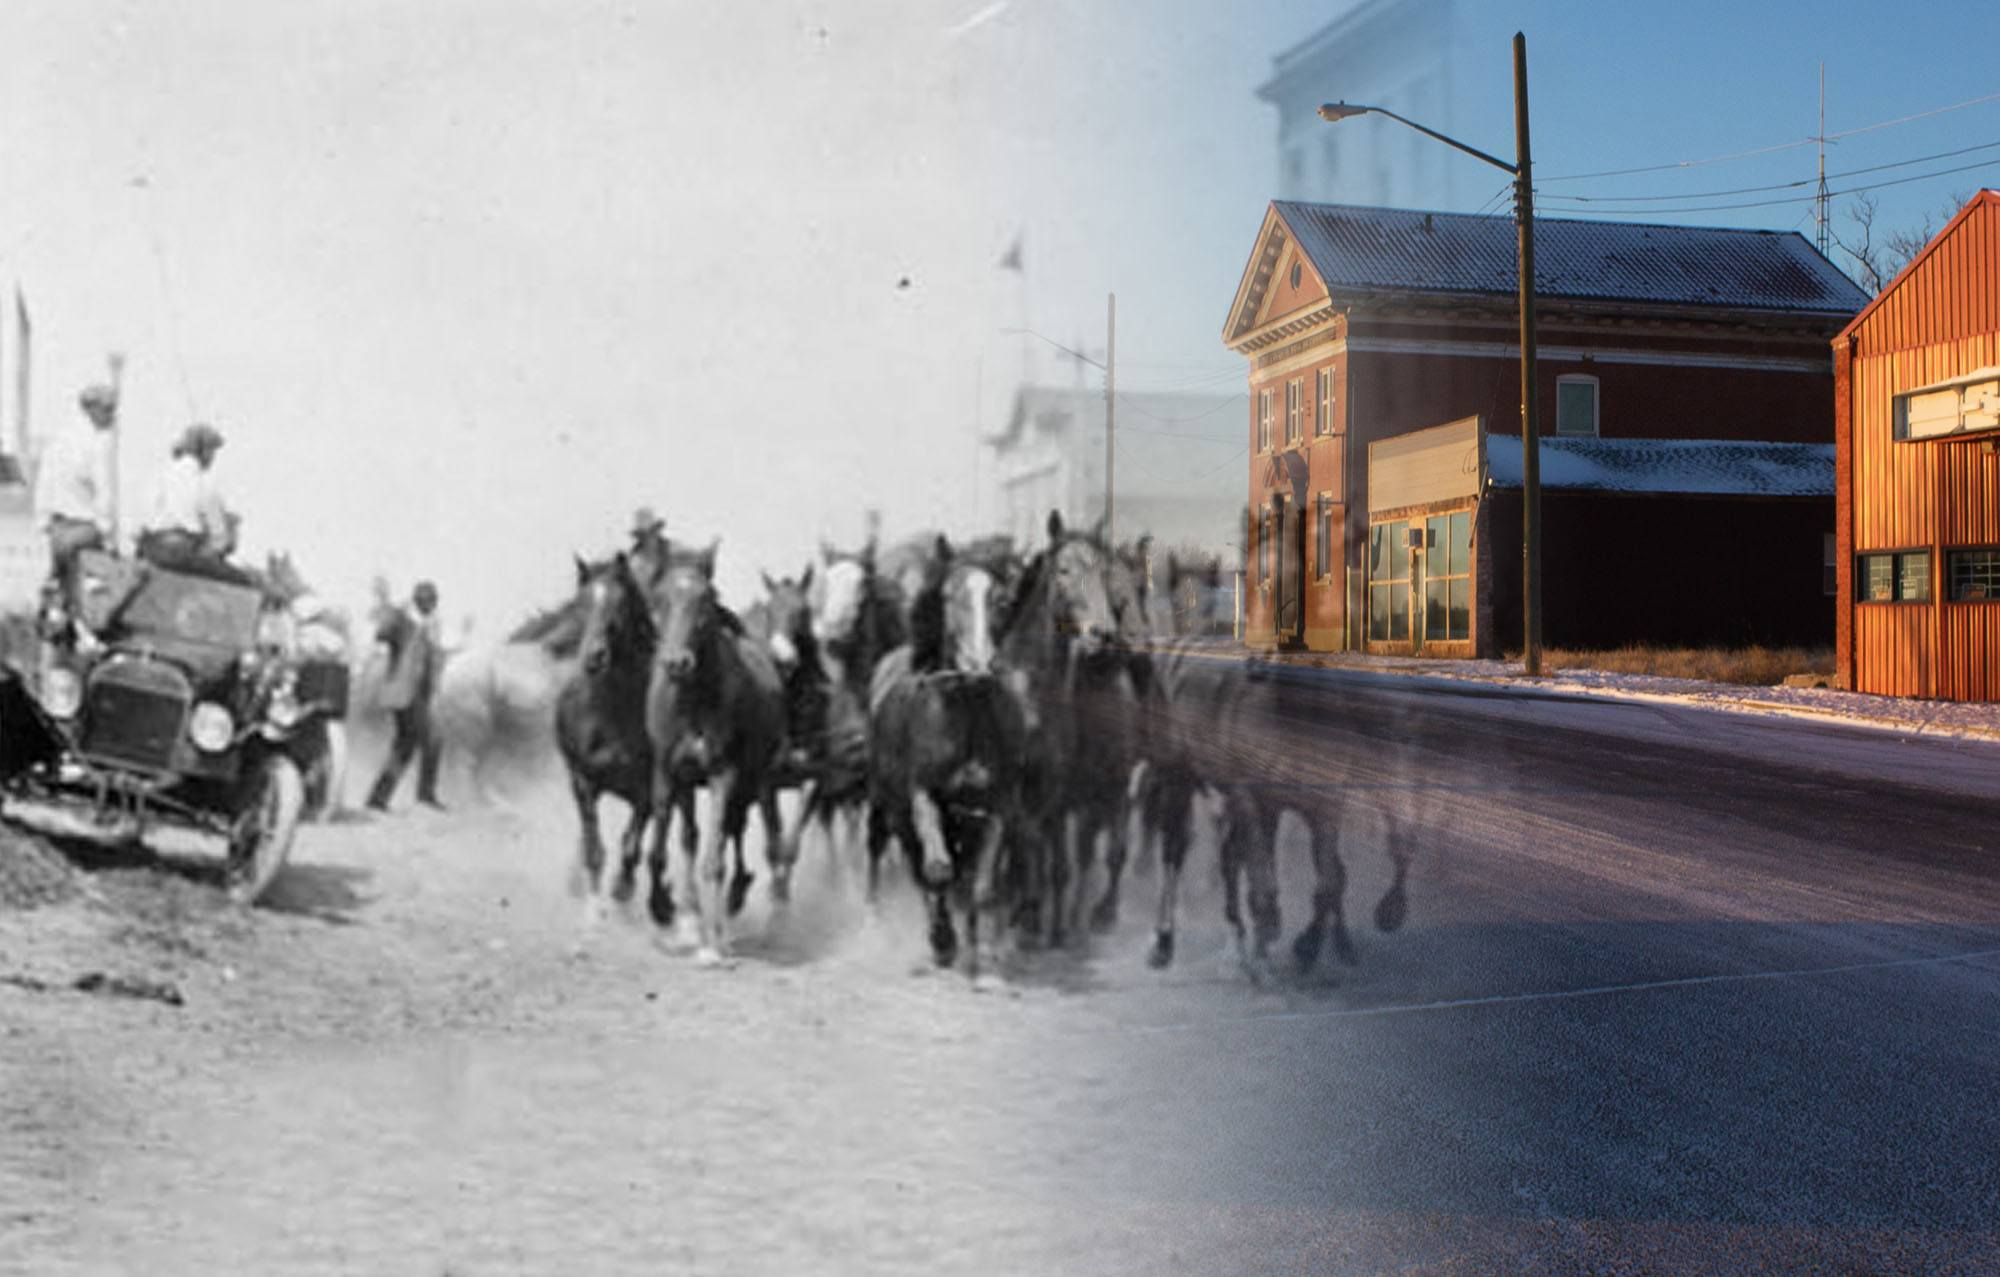 Horses being stampeded down Main Street during the Gleichen Stampede in 1915 (Glenbow Museum and Archives/On This Spot)